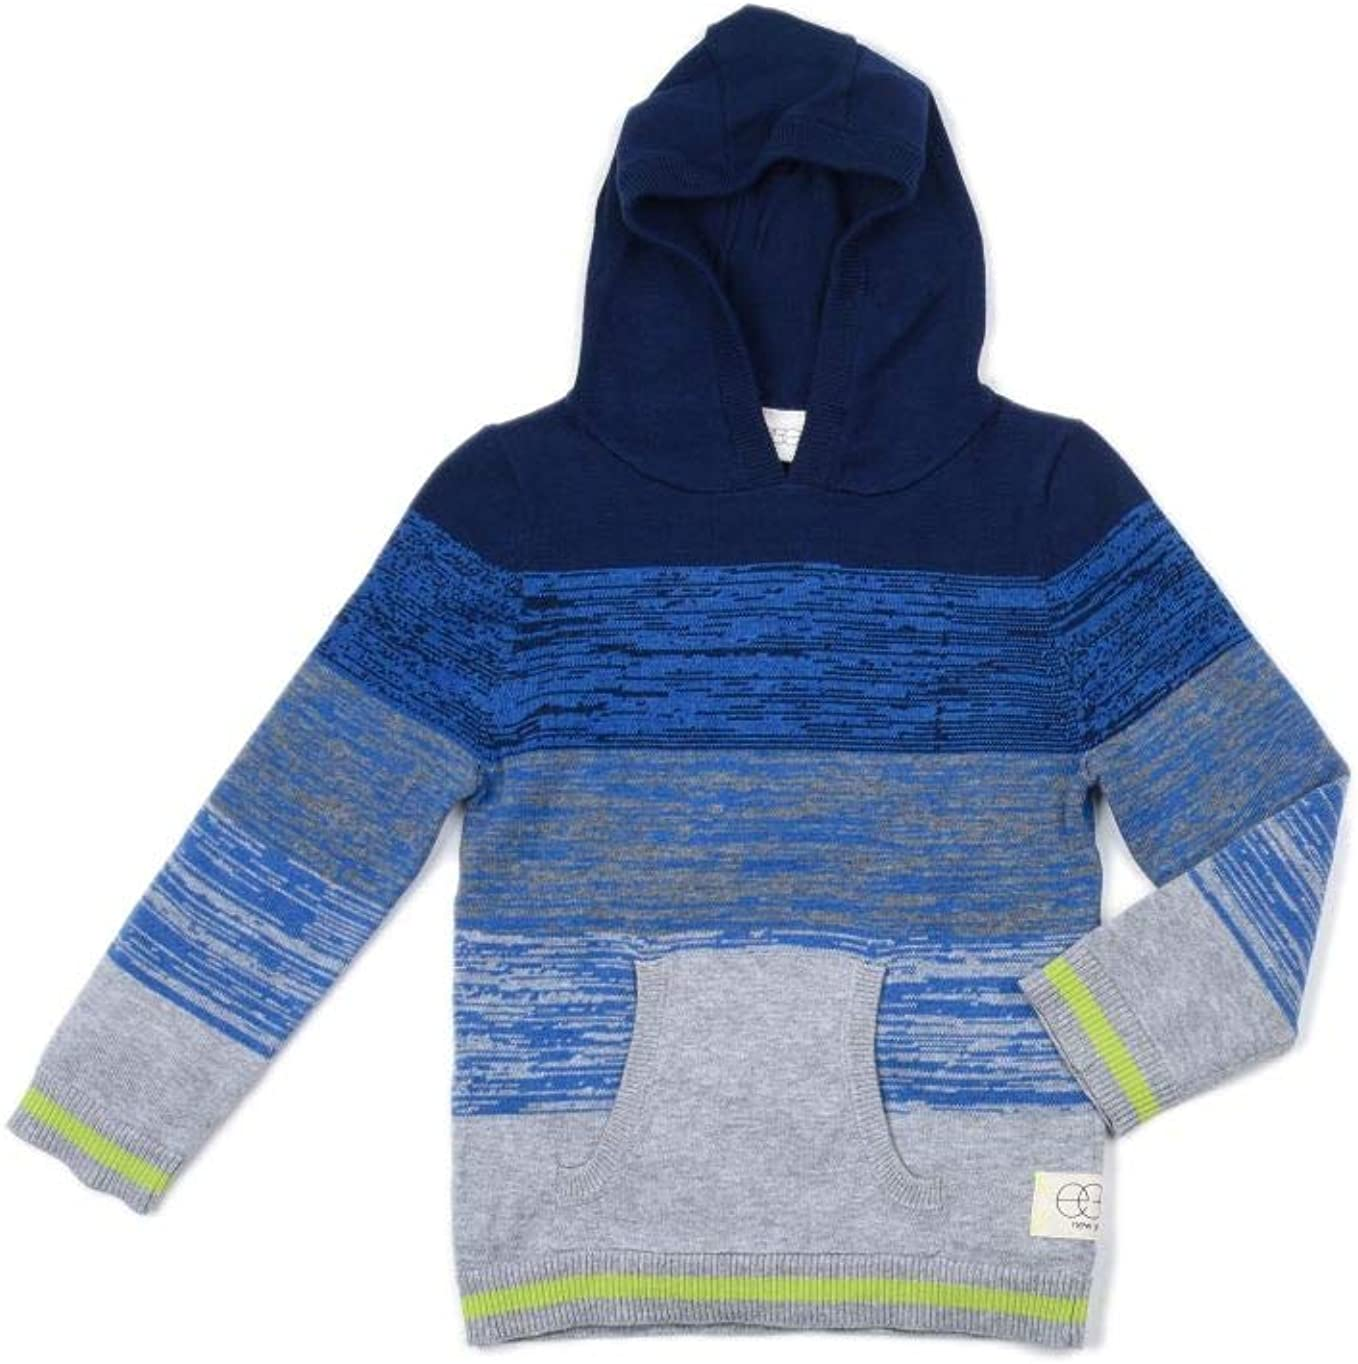 Egg New York Gio Sweater in Blue